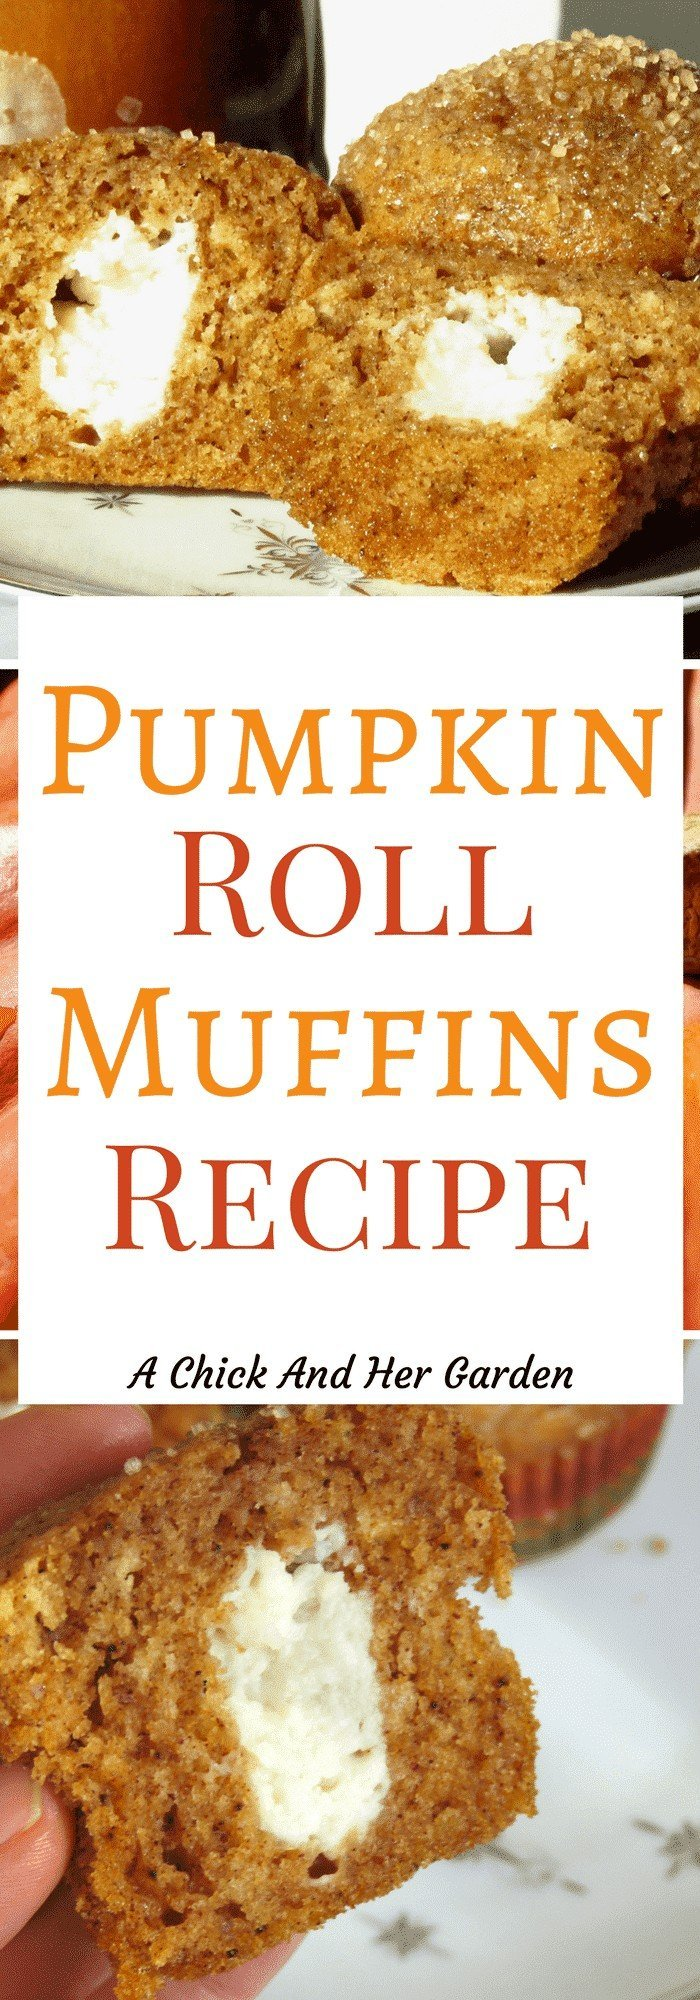 Do you love pumpkin rolls? How about so much that you need them for breakfast?! If so, you NEED to try this Pumpkin Roll Muffins recipe!